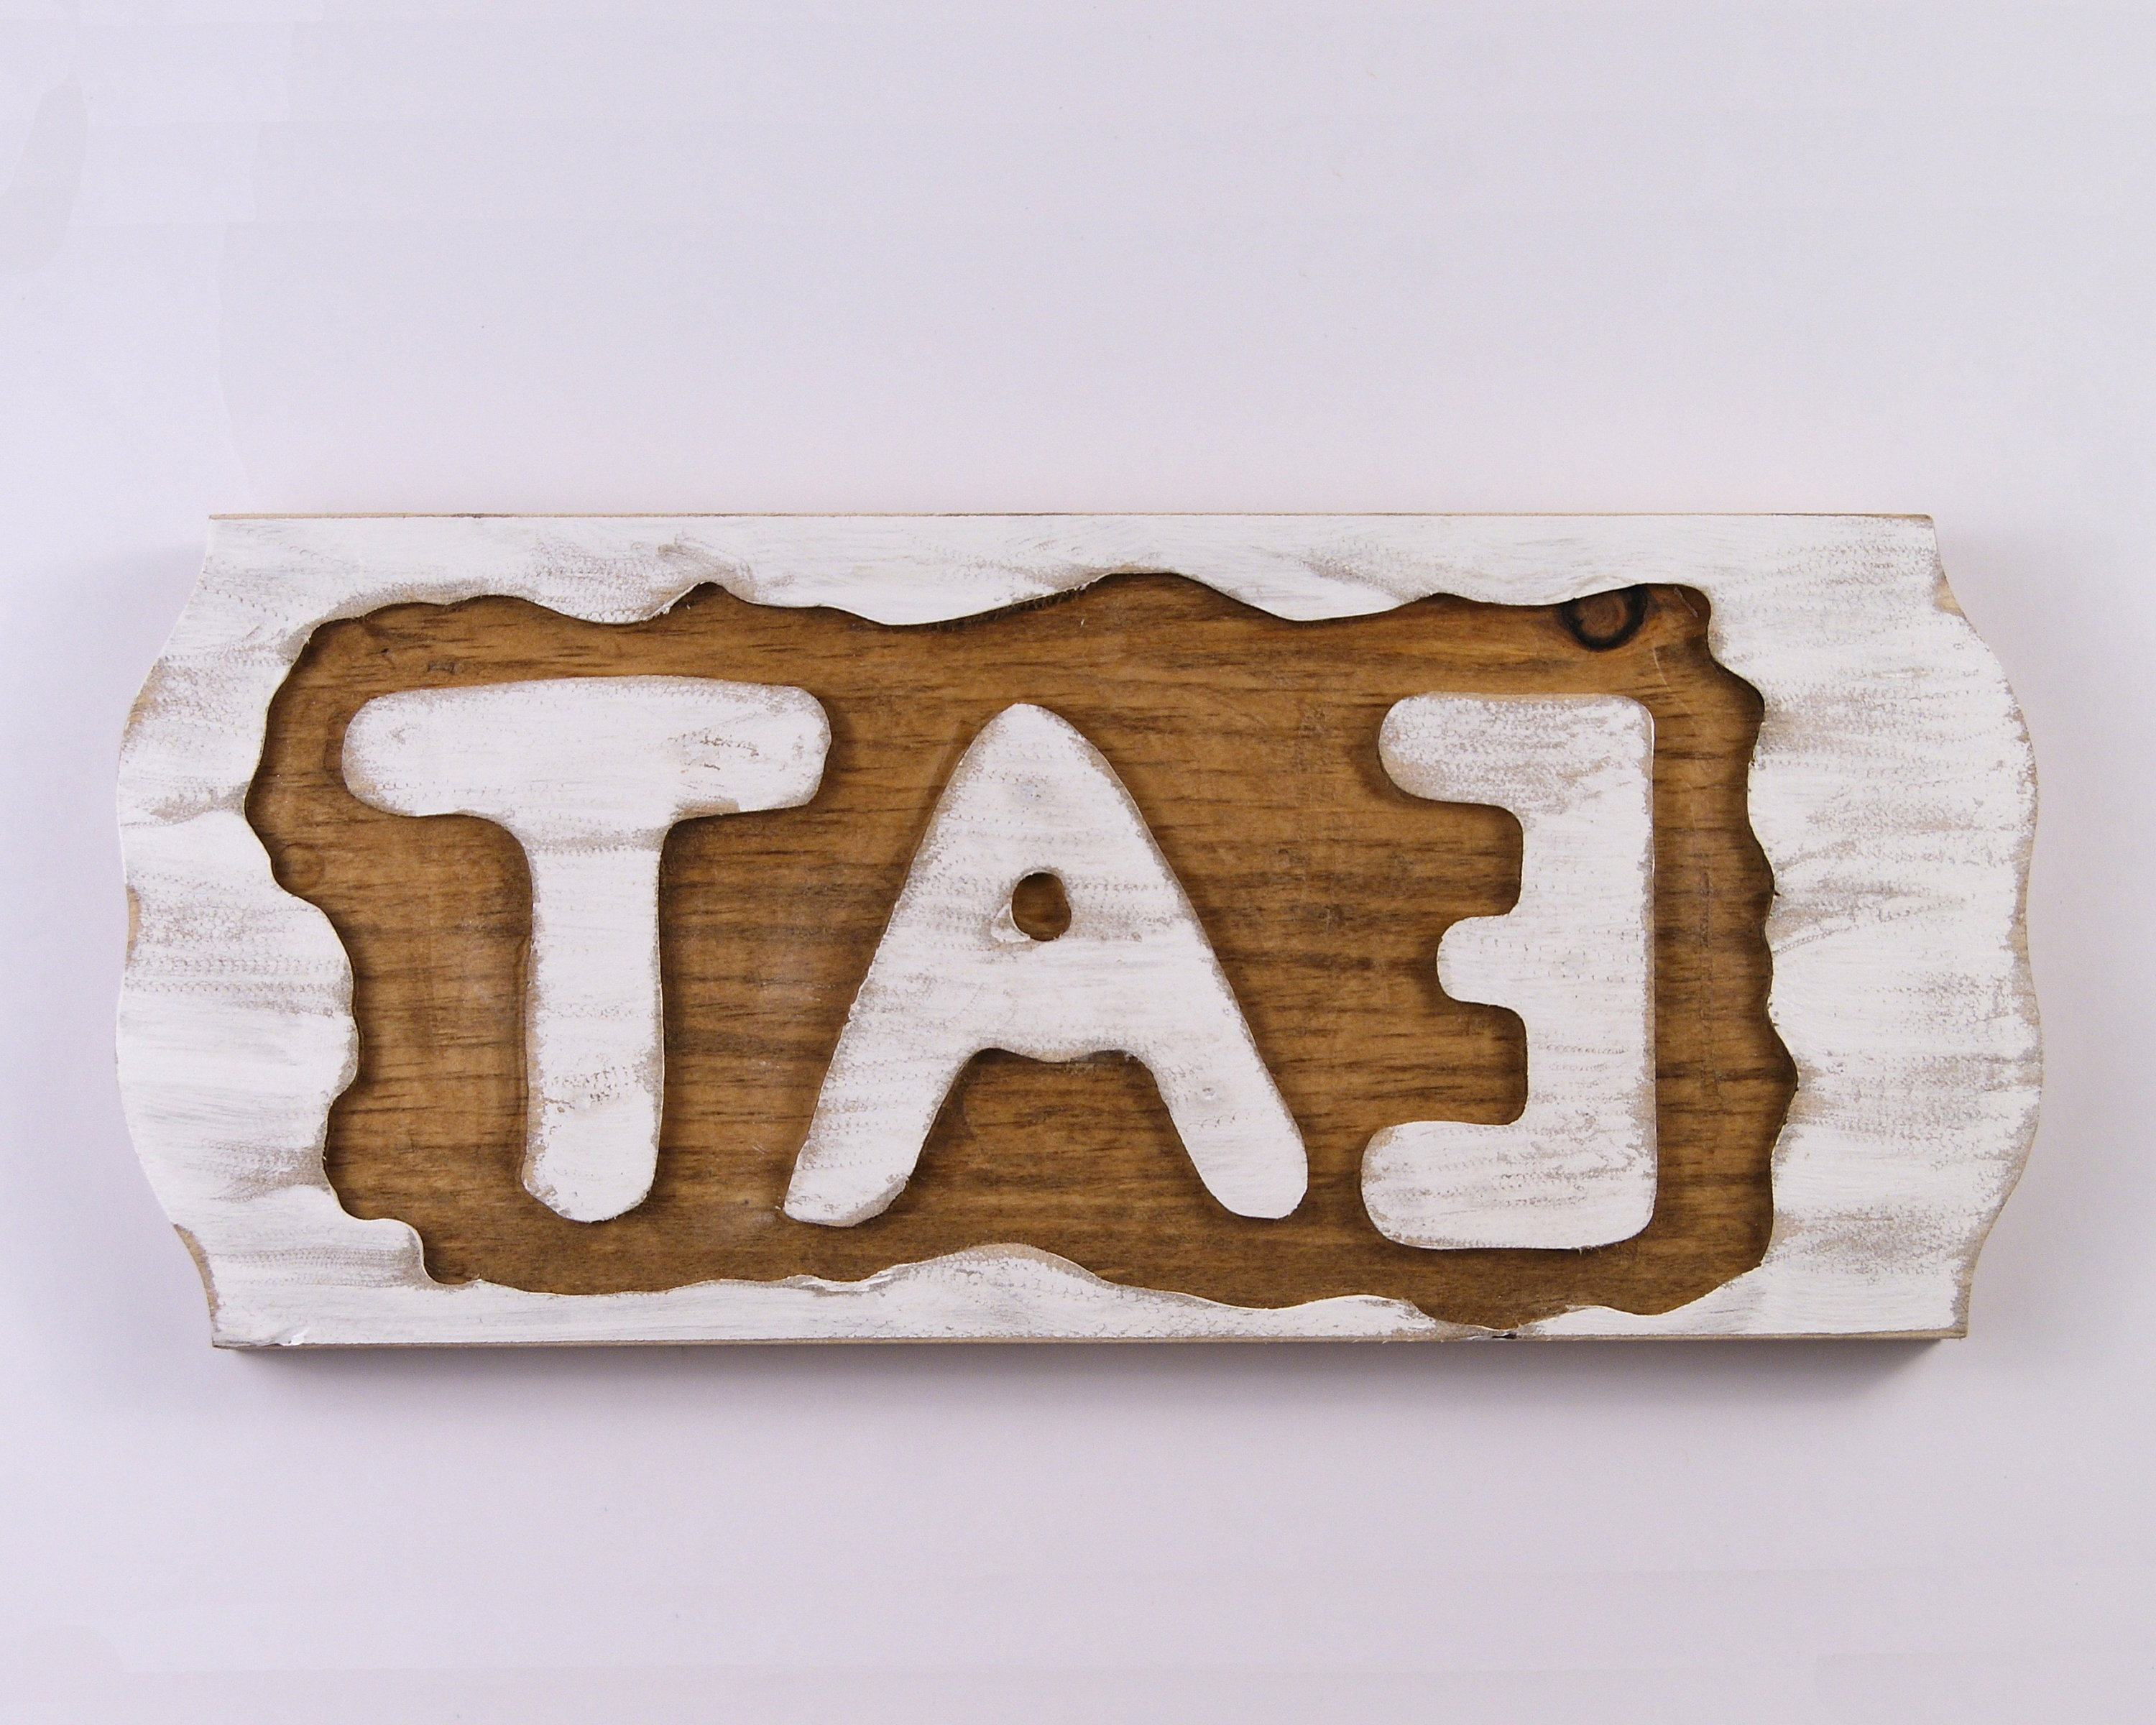 Popular Eat Sign, Rustic White Wall Hanging, Reclaimed Wood Wall Hanging Within Eat Rustic Farmhouse Wood Wall Decor (Gallery 18 of 20)